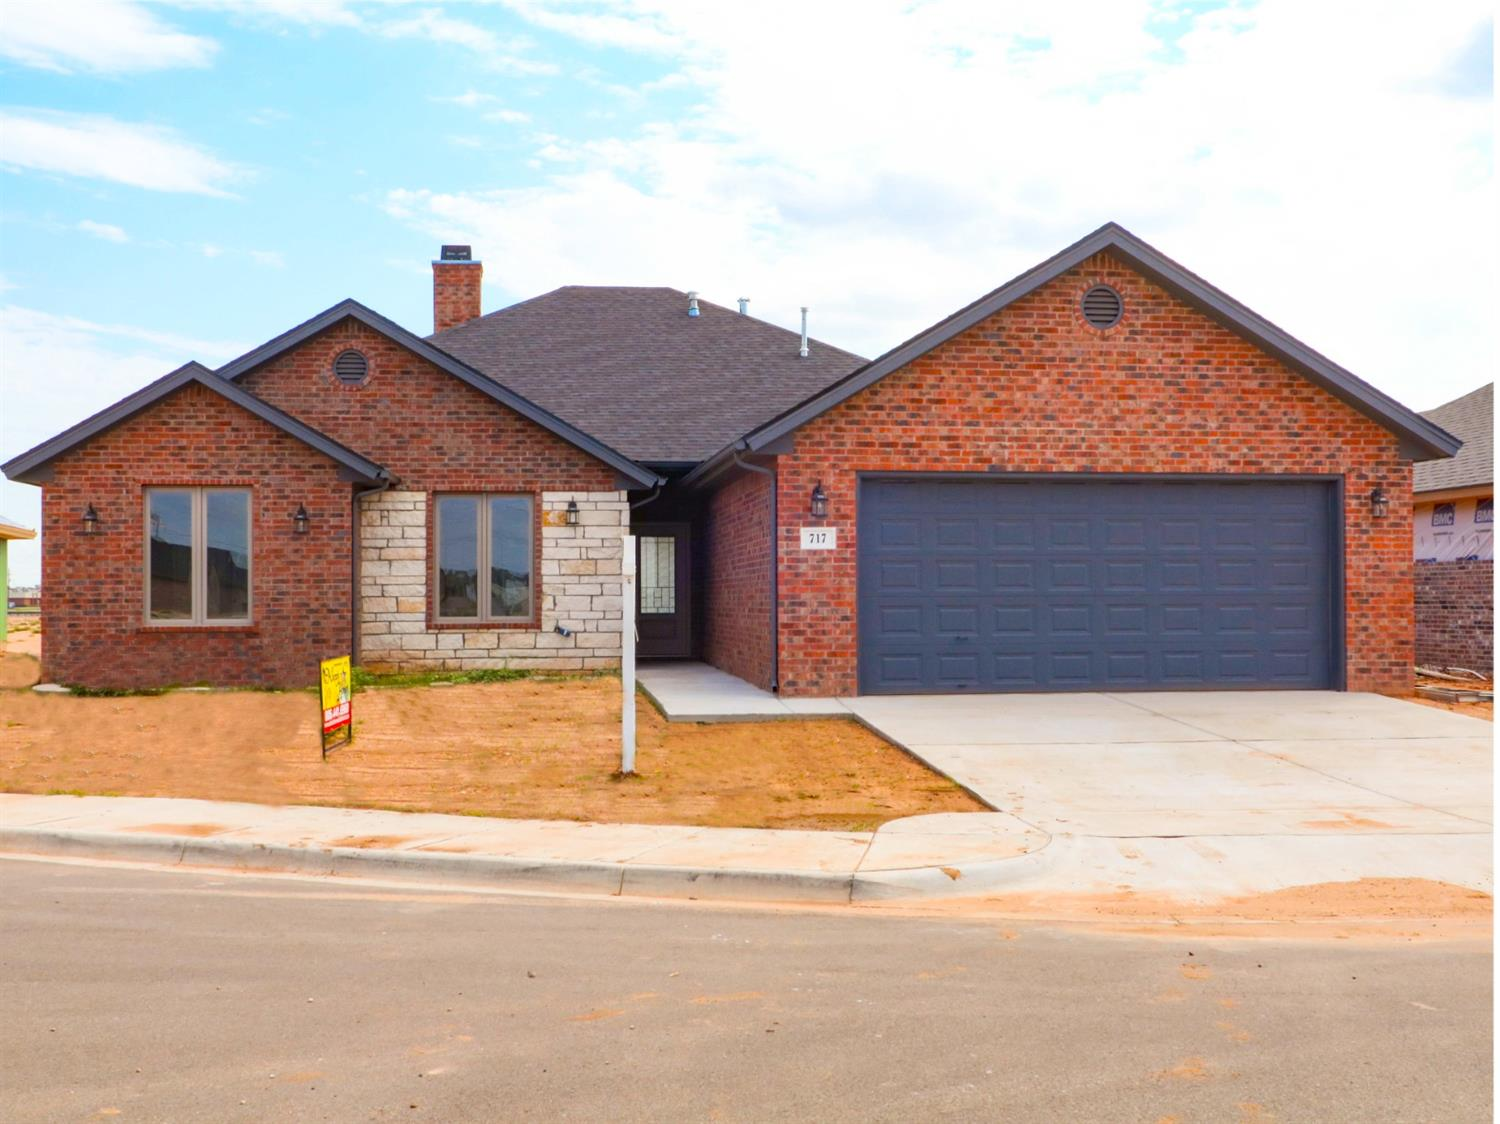 Alexis Homes of Lubbock presents this Incredible Home...Warm and Open Living Area and Awesome Kitchen w/double ovens, gas cooktop, great pantry, and a MASSIVE Granite Island....Isolated Master Suite w/Separate Tub & Huge Shower, His/Her Vanities, and Wrap Around Closet w/Two Built-in Dressers....Large Additional Bedrooms... Spray Foam Insulation in the Attic for those low,Low,LOW utility bills... 20' X 12' Covered Patio....Fence, Sod and Sprinkler System coming next week!